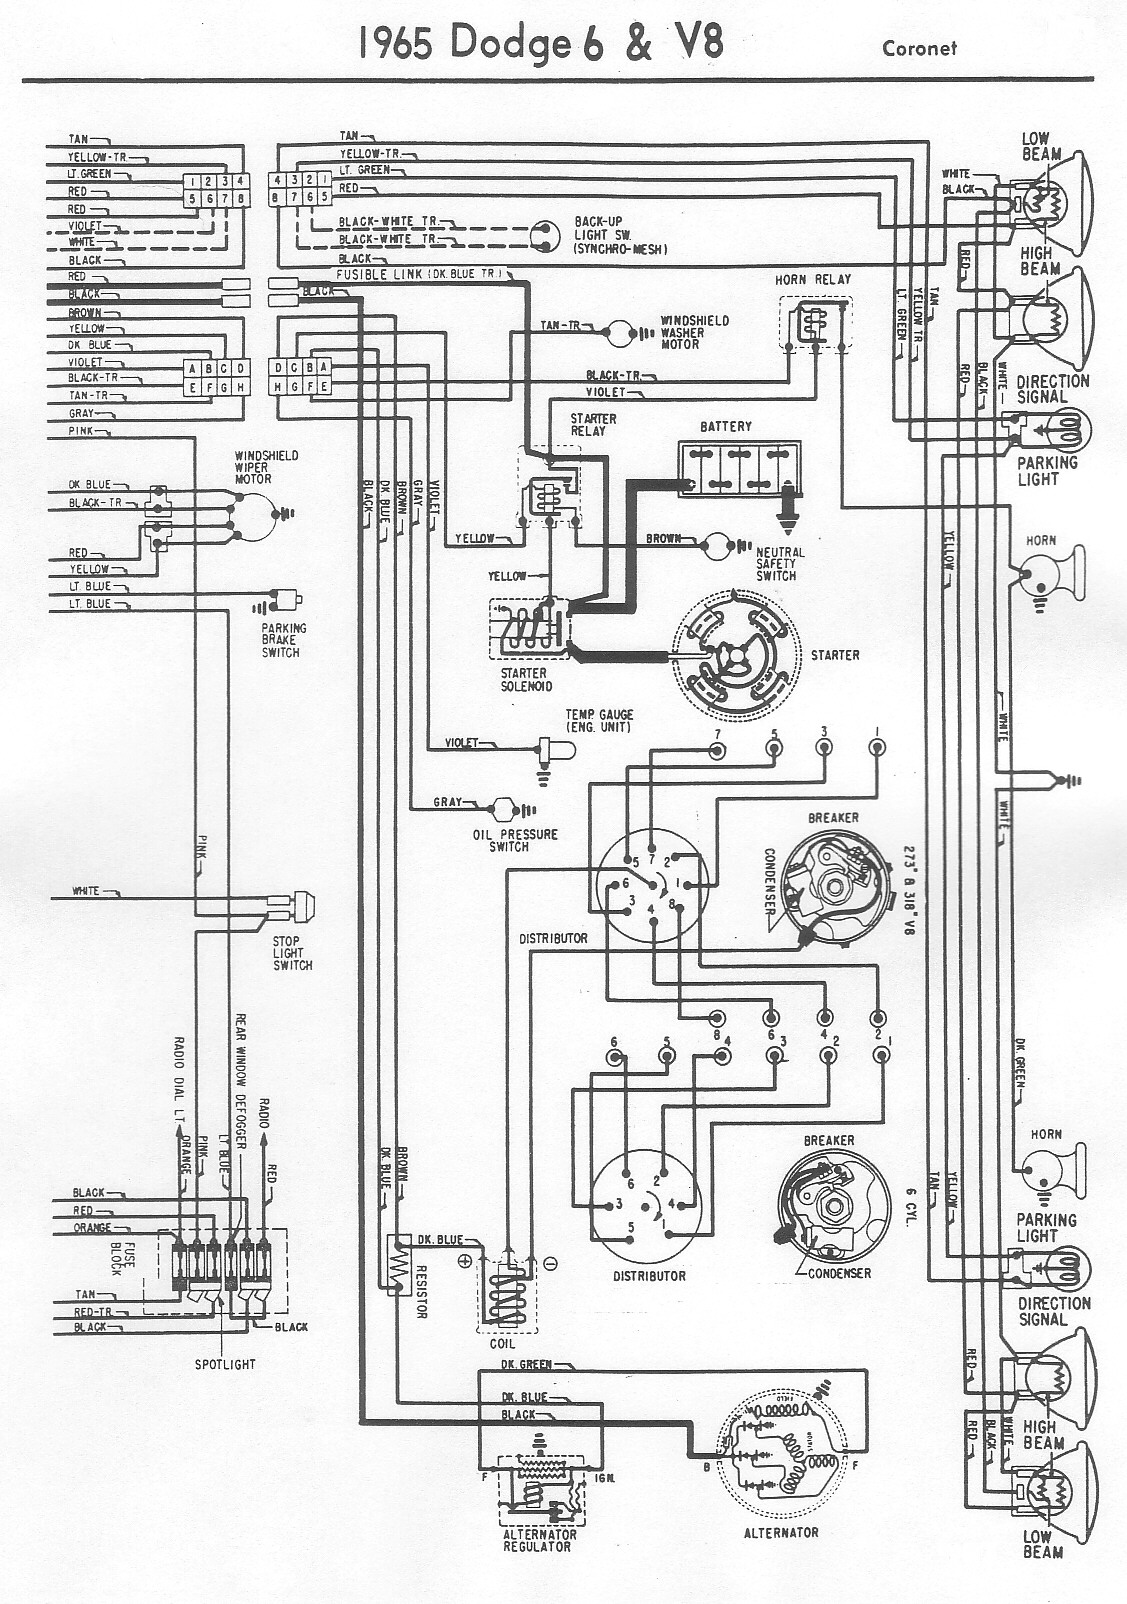 1965 plymouth satellite wiring diagram trusted wiring diagram 1966 mustang wiring diagram blower motor 1965 plymouth [ 1127 x 1604 Pixel ]